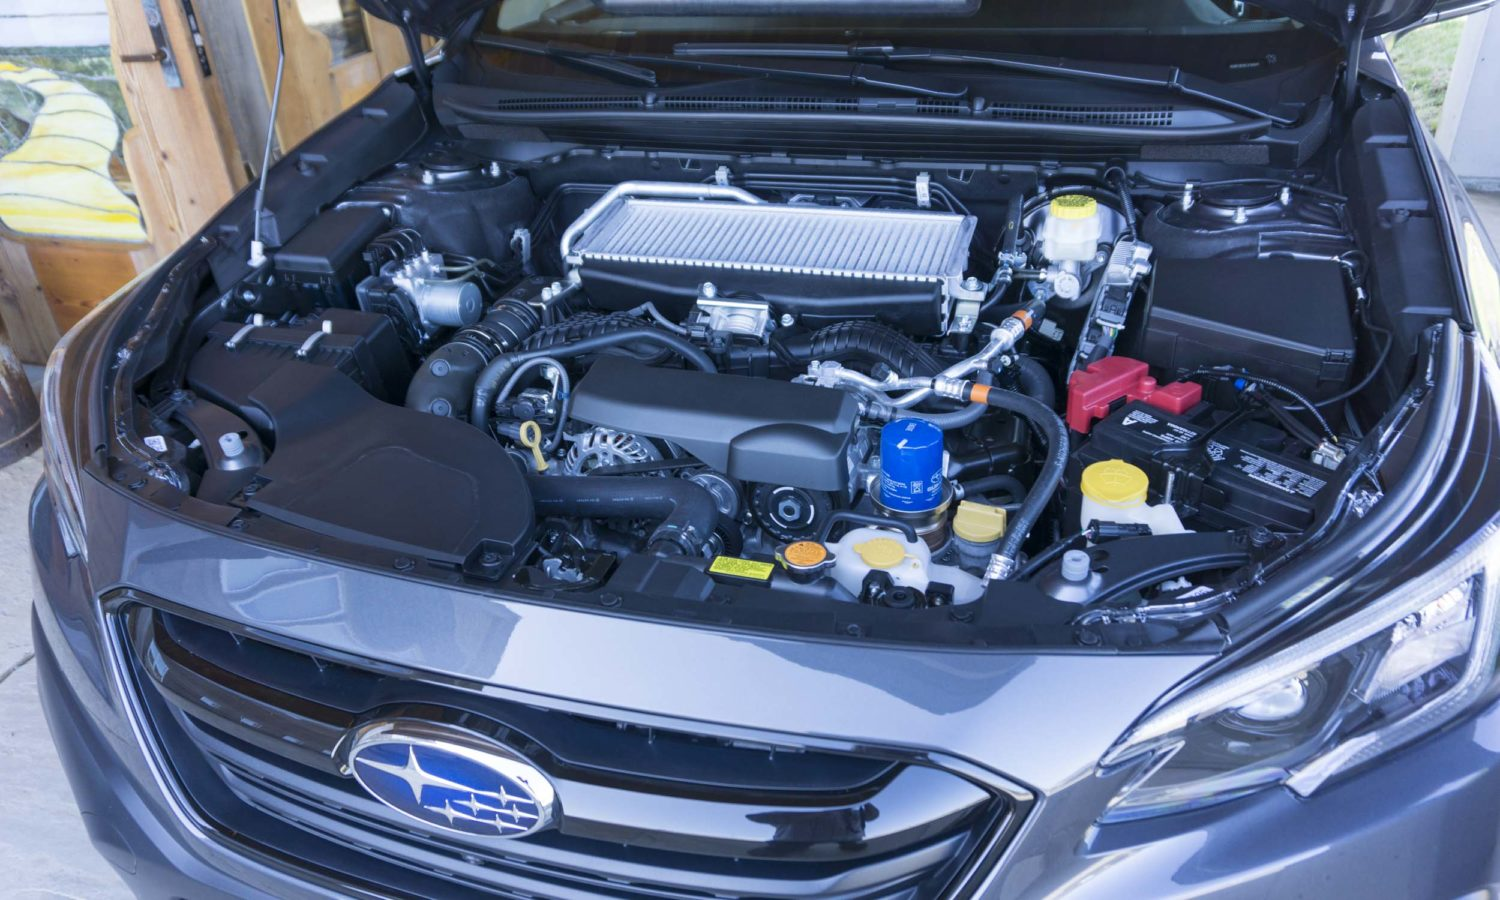 Subaru Outback Turbo Engine